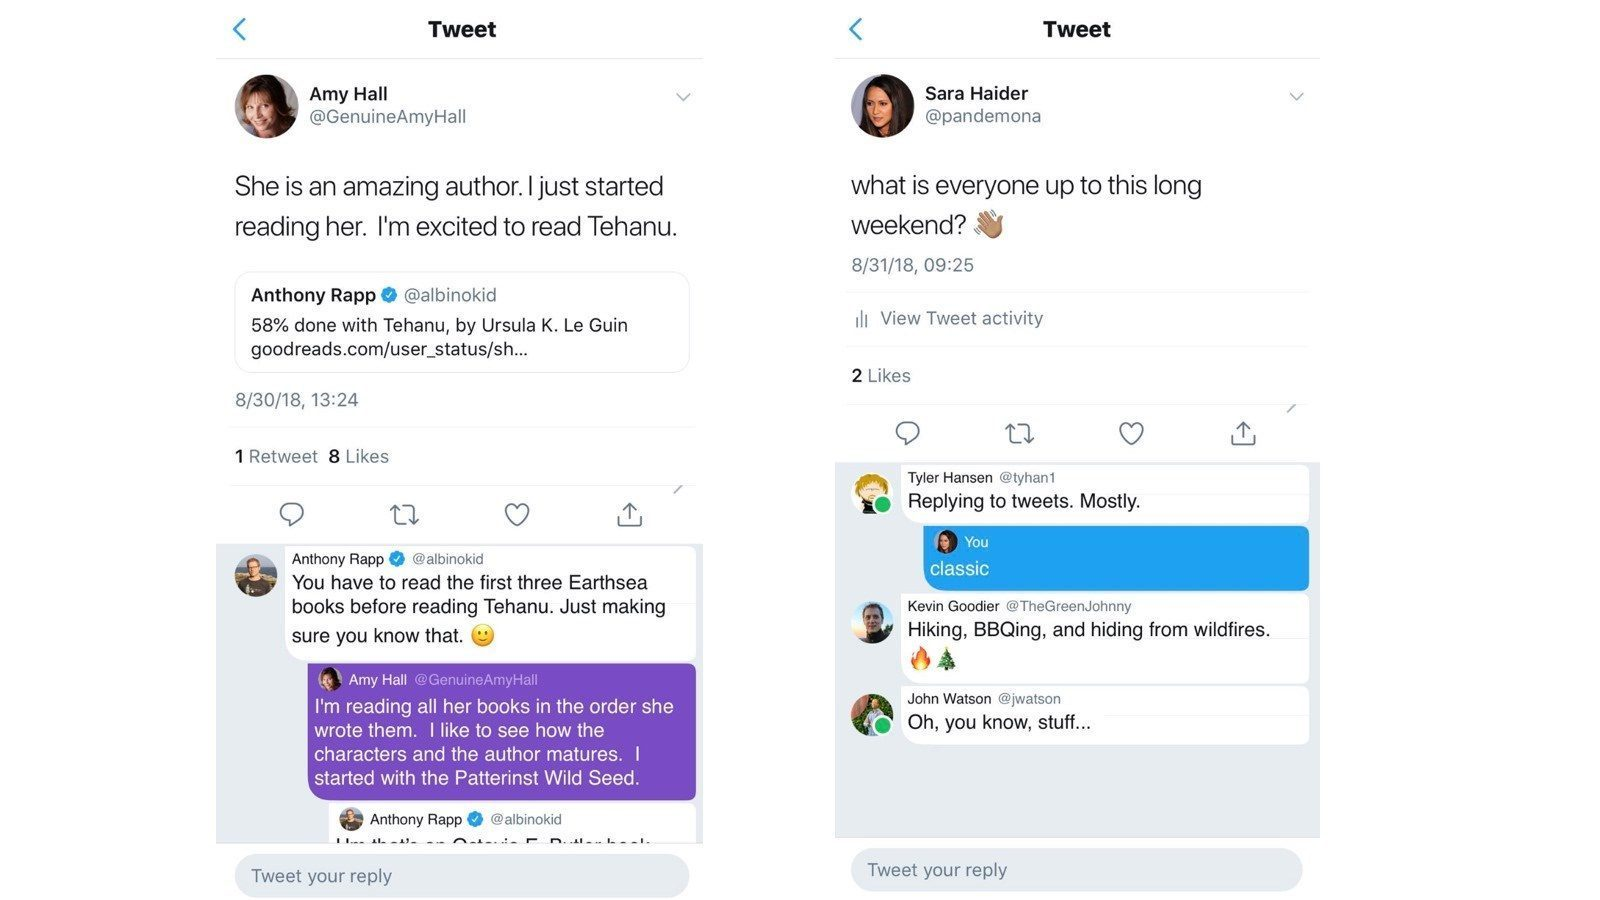 Twitter launches new beta testing app 'Twttr' with redesigned replies, here's how to sign up